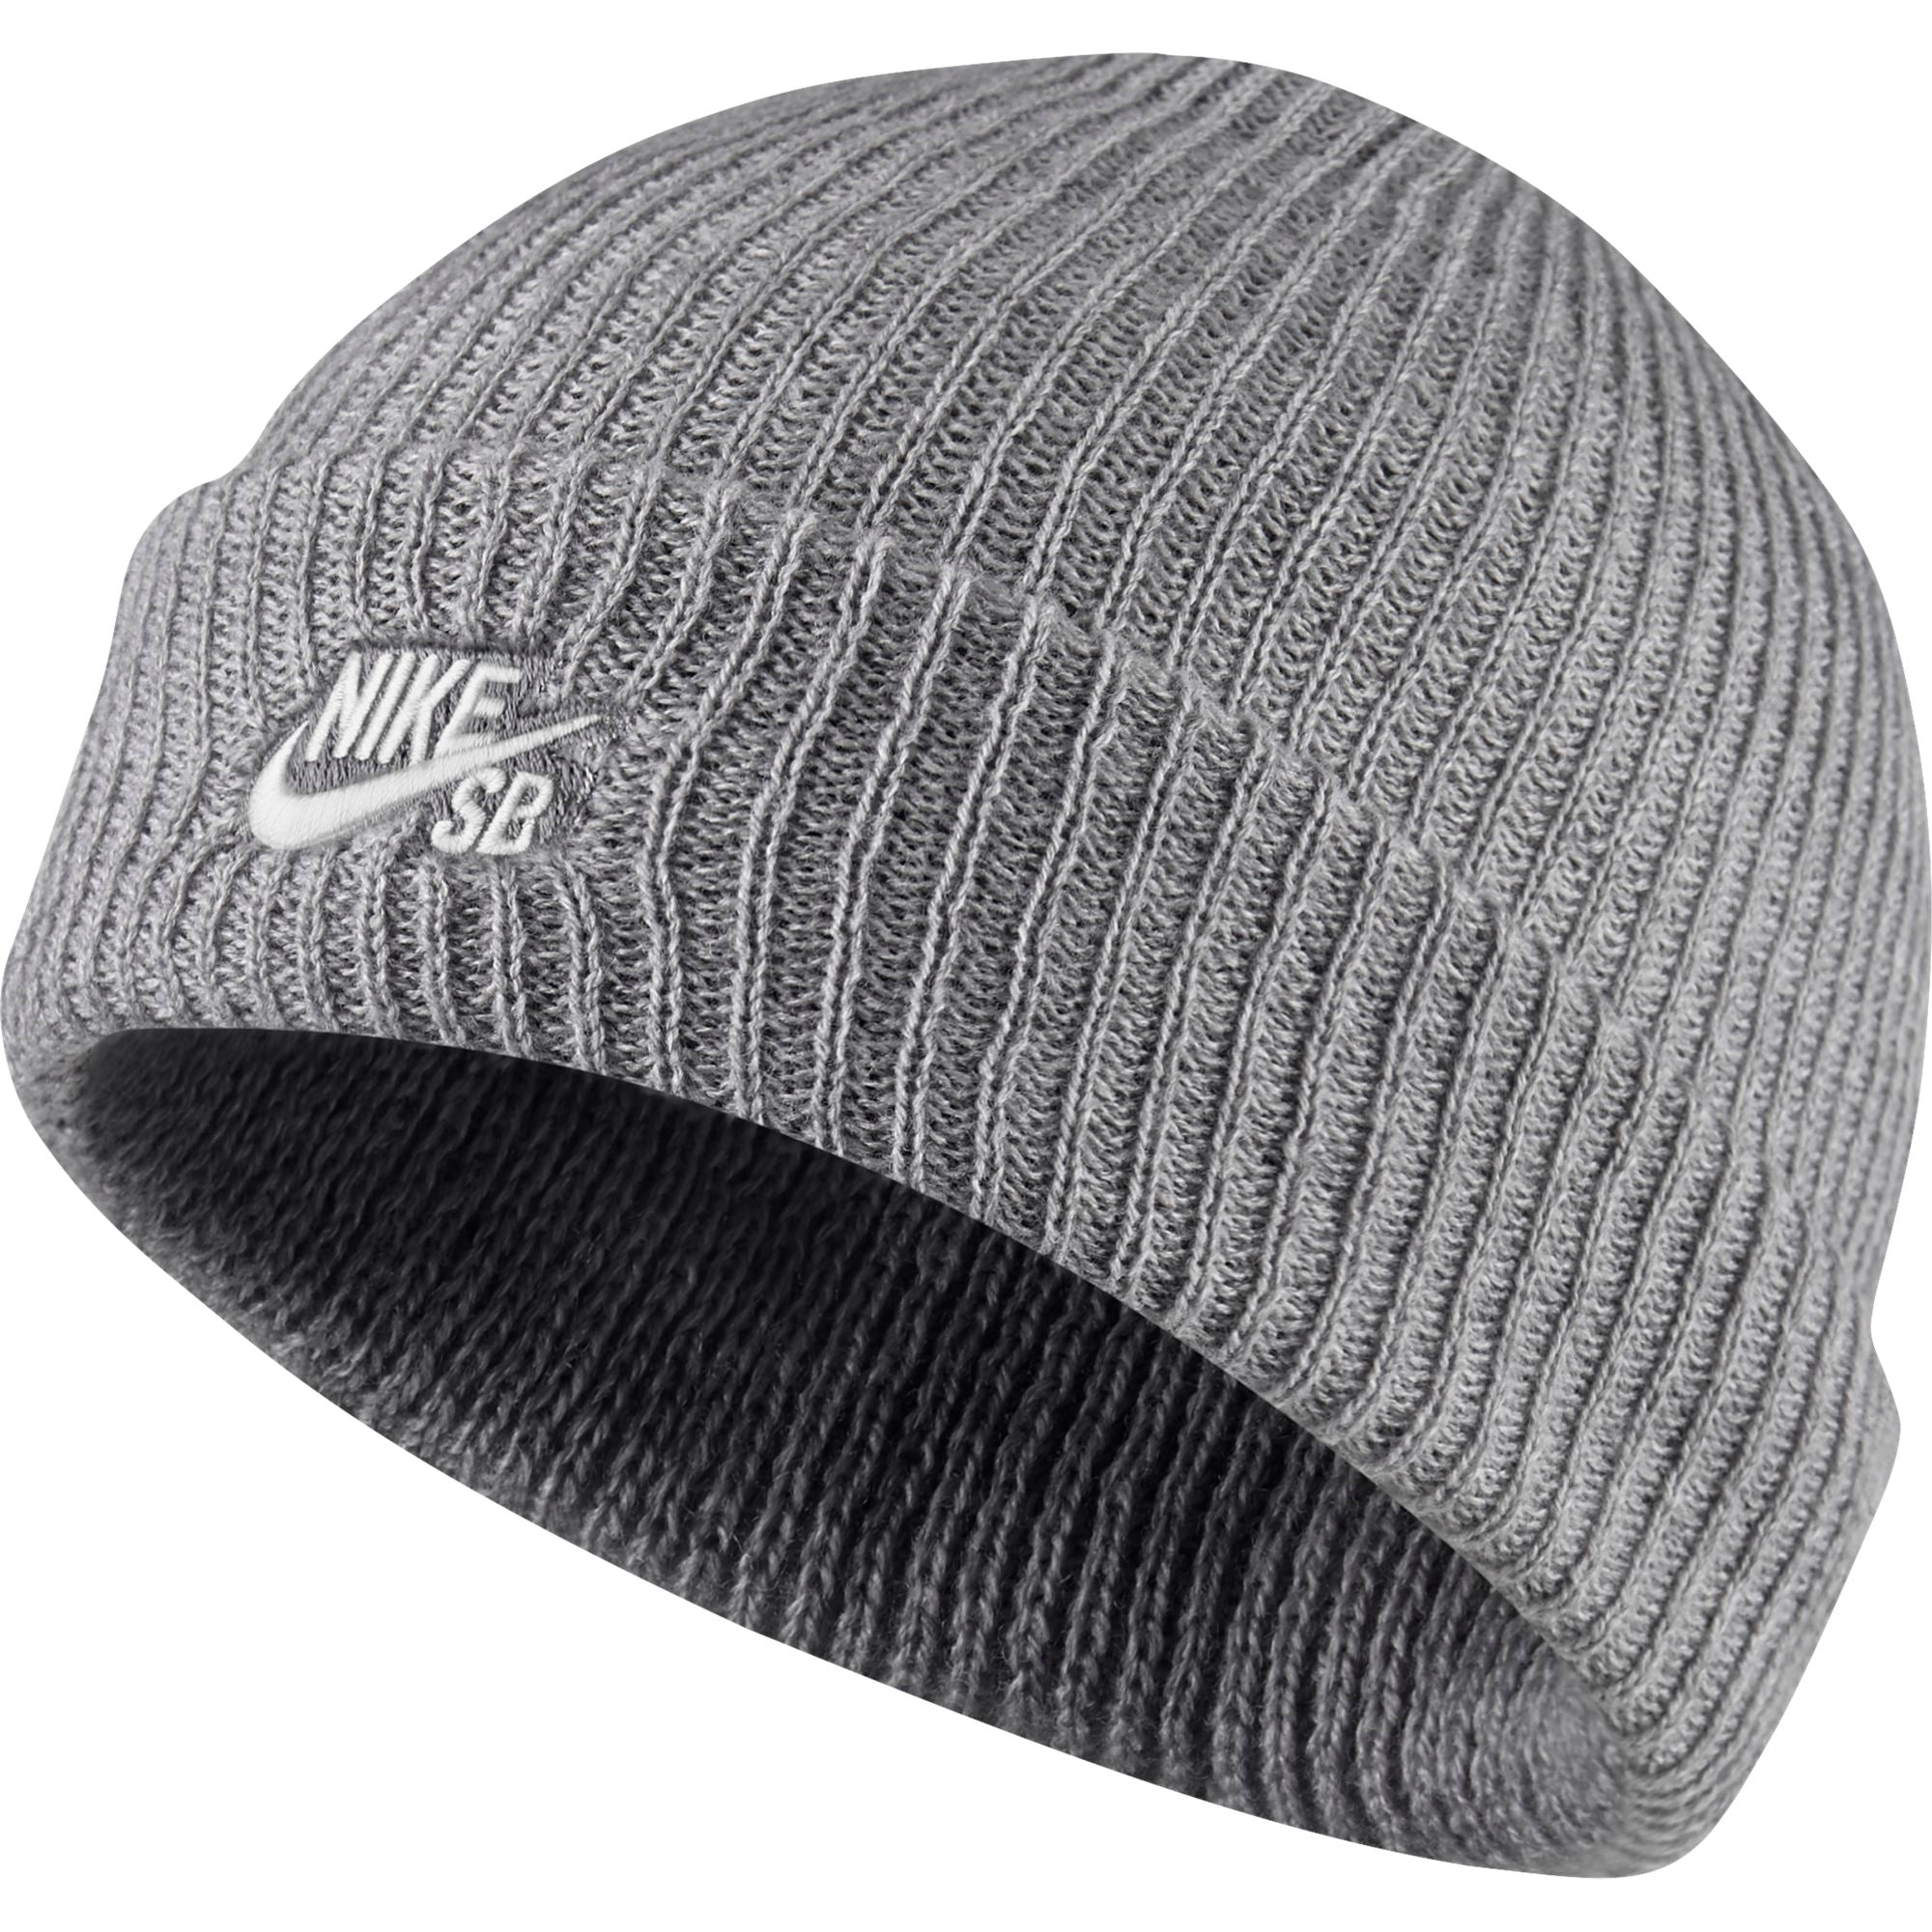 Fisherman Cap Dark Grey Heather/ White